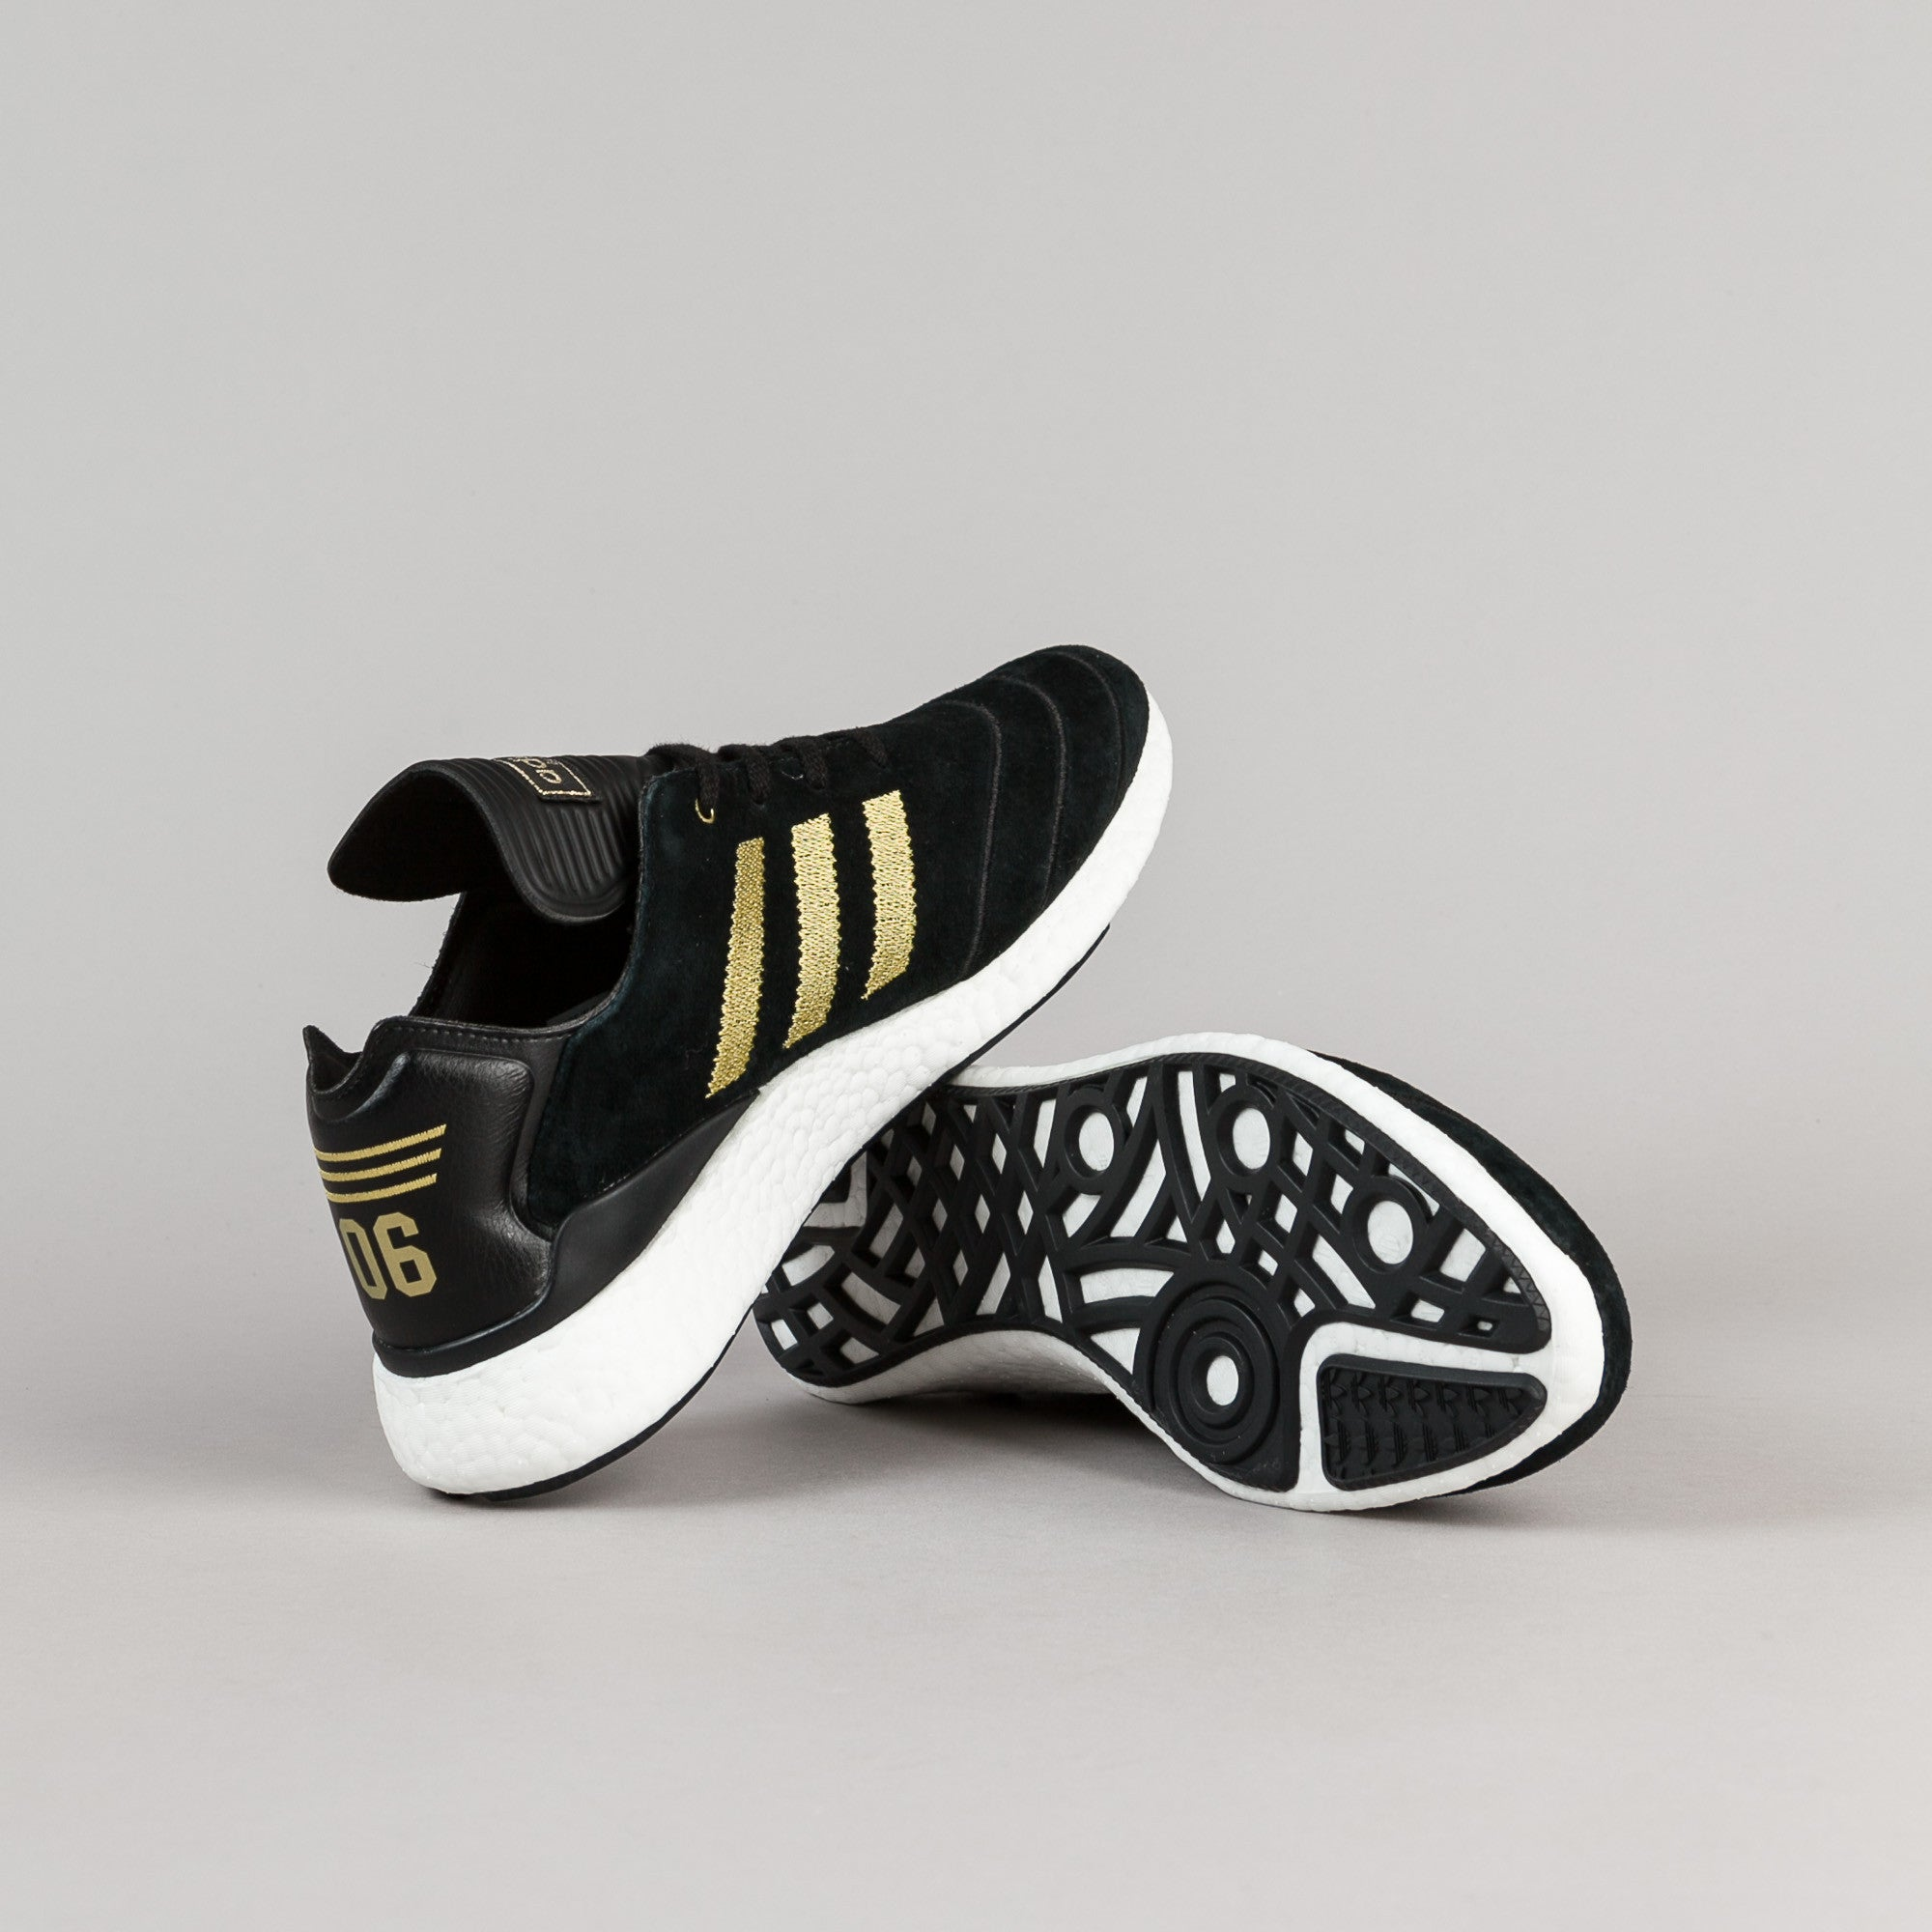 ... Adidas Busenitz Pure Boost 10 Year Anniversary Shoes - Core Black /  Metallic Gold / White ...